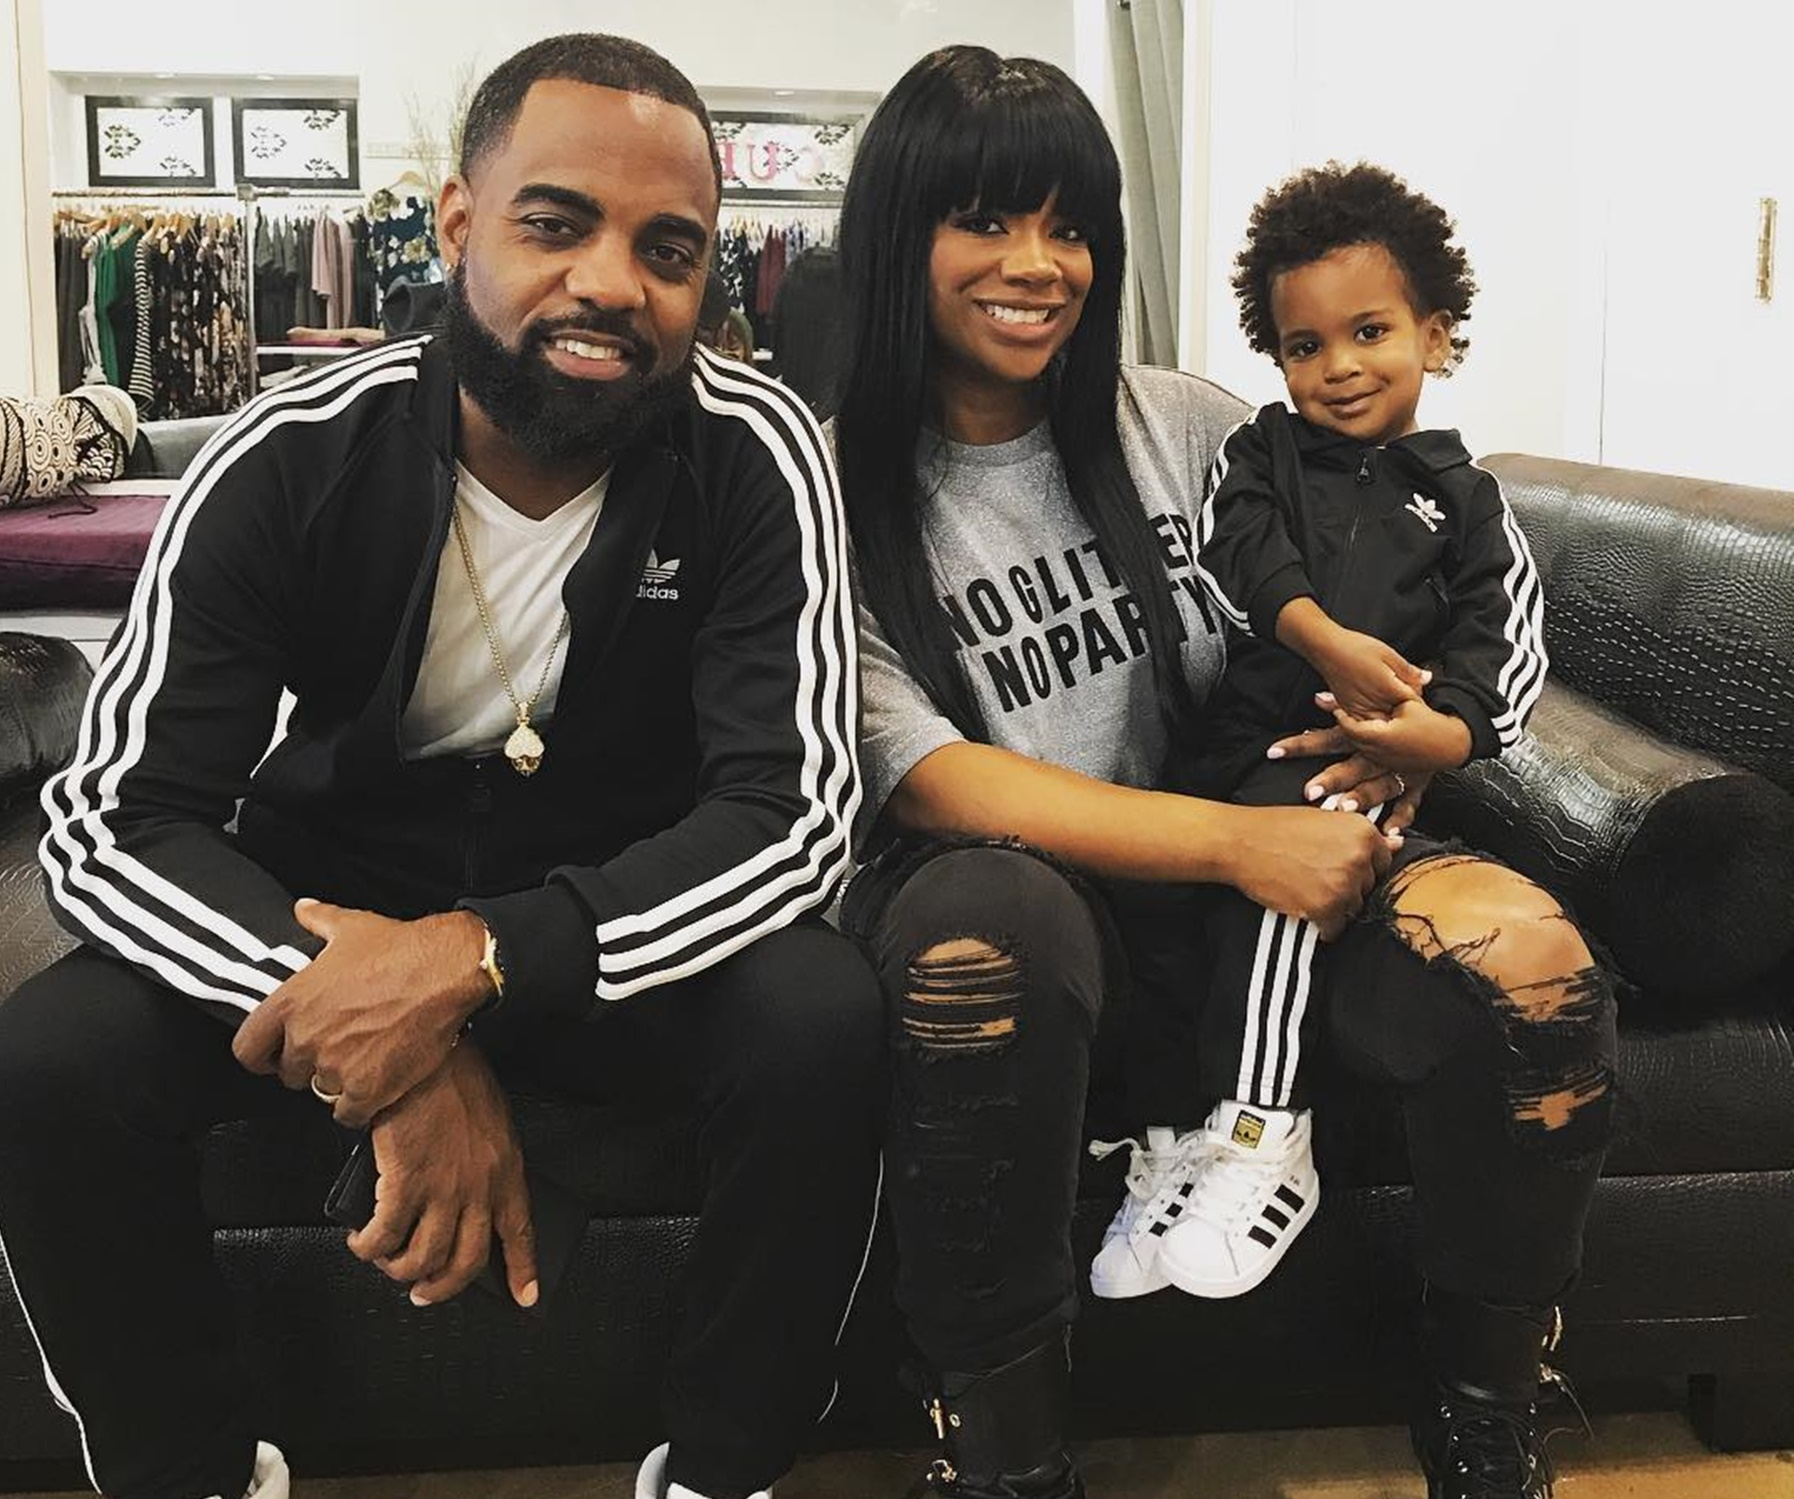 """kandi-burruss-and-todd-tucker-are-the-proudest-parents-ace-wells-tucker-was-nelson-mandela-in-his-schools-black-history-month-play-see-the-pics"""